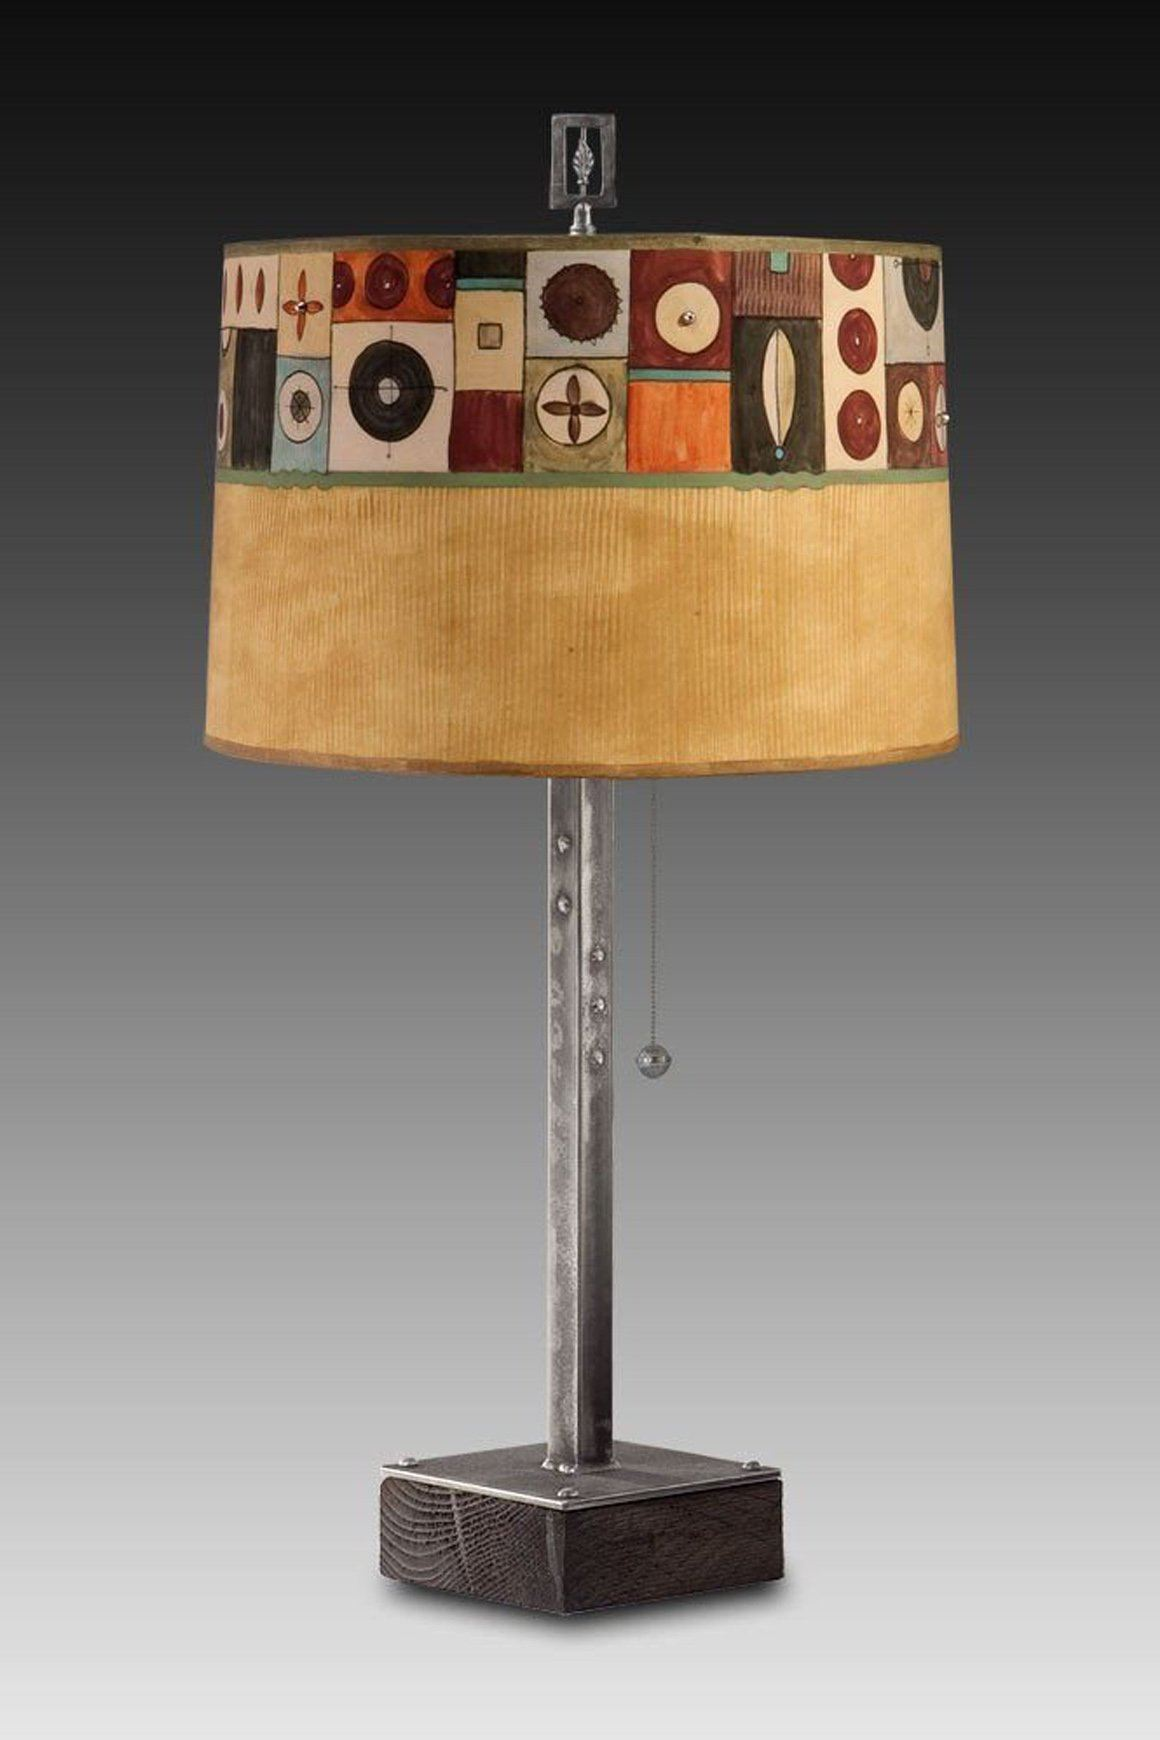 Steel Table Lamp on Wood with Large Drum Shade in Lucky Mosaic Hickory